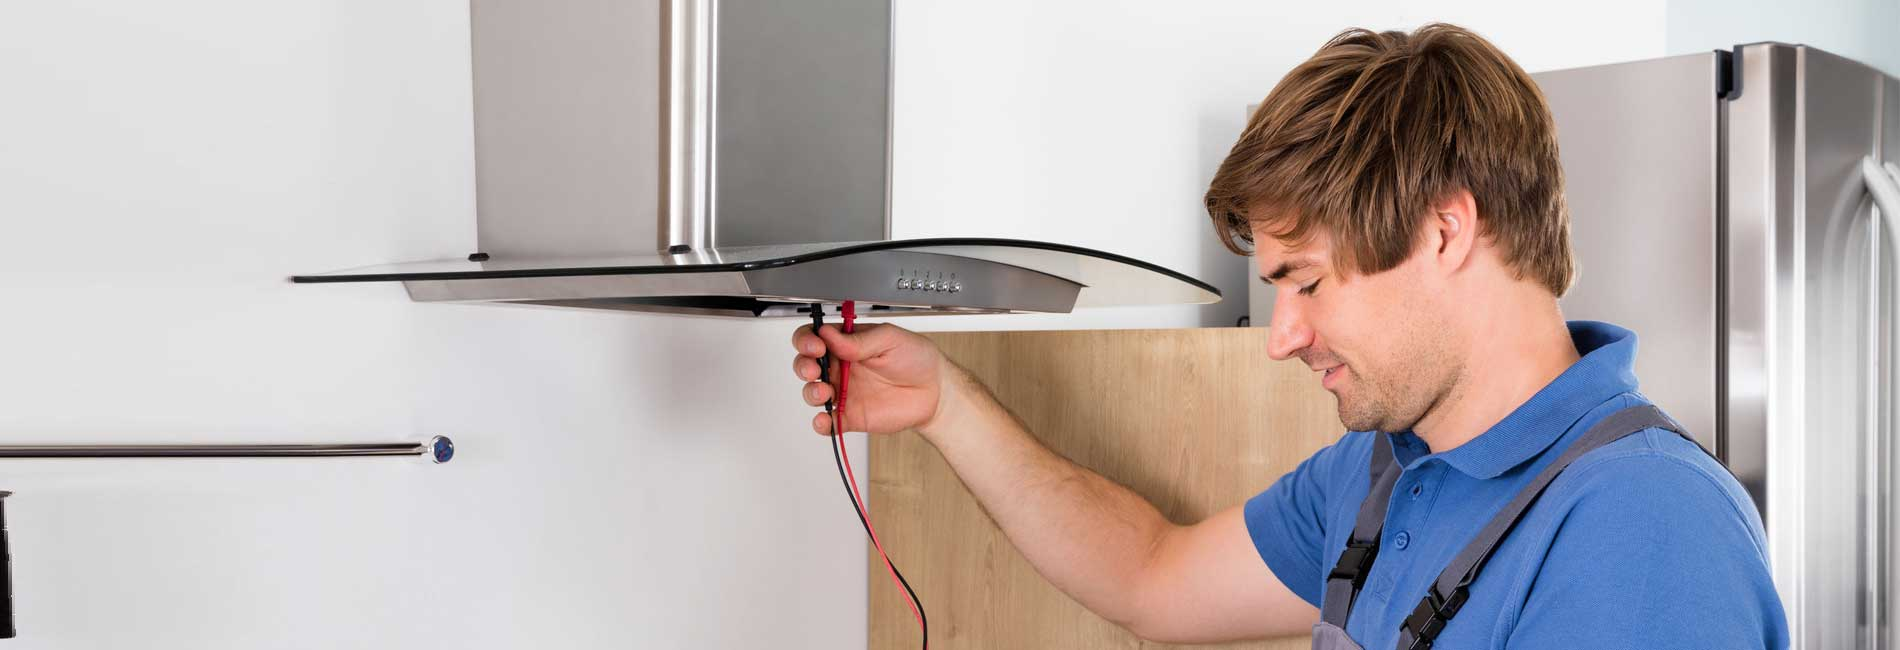 Hindware Chimney Service in Nungambakkam